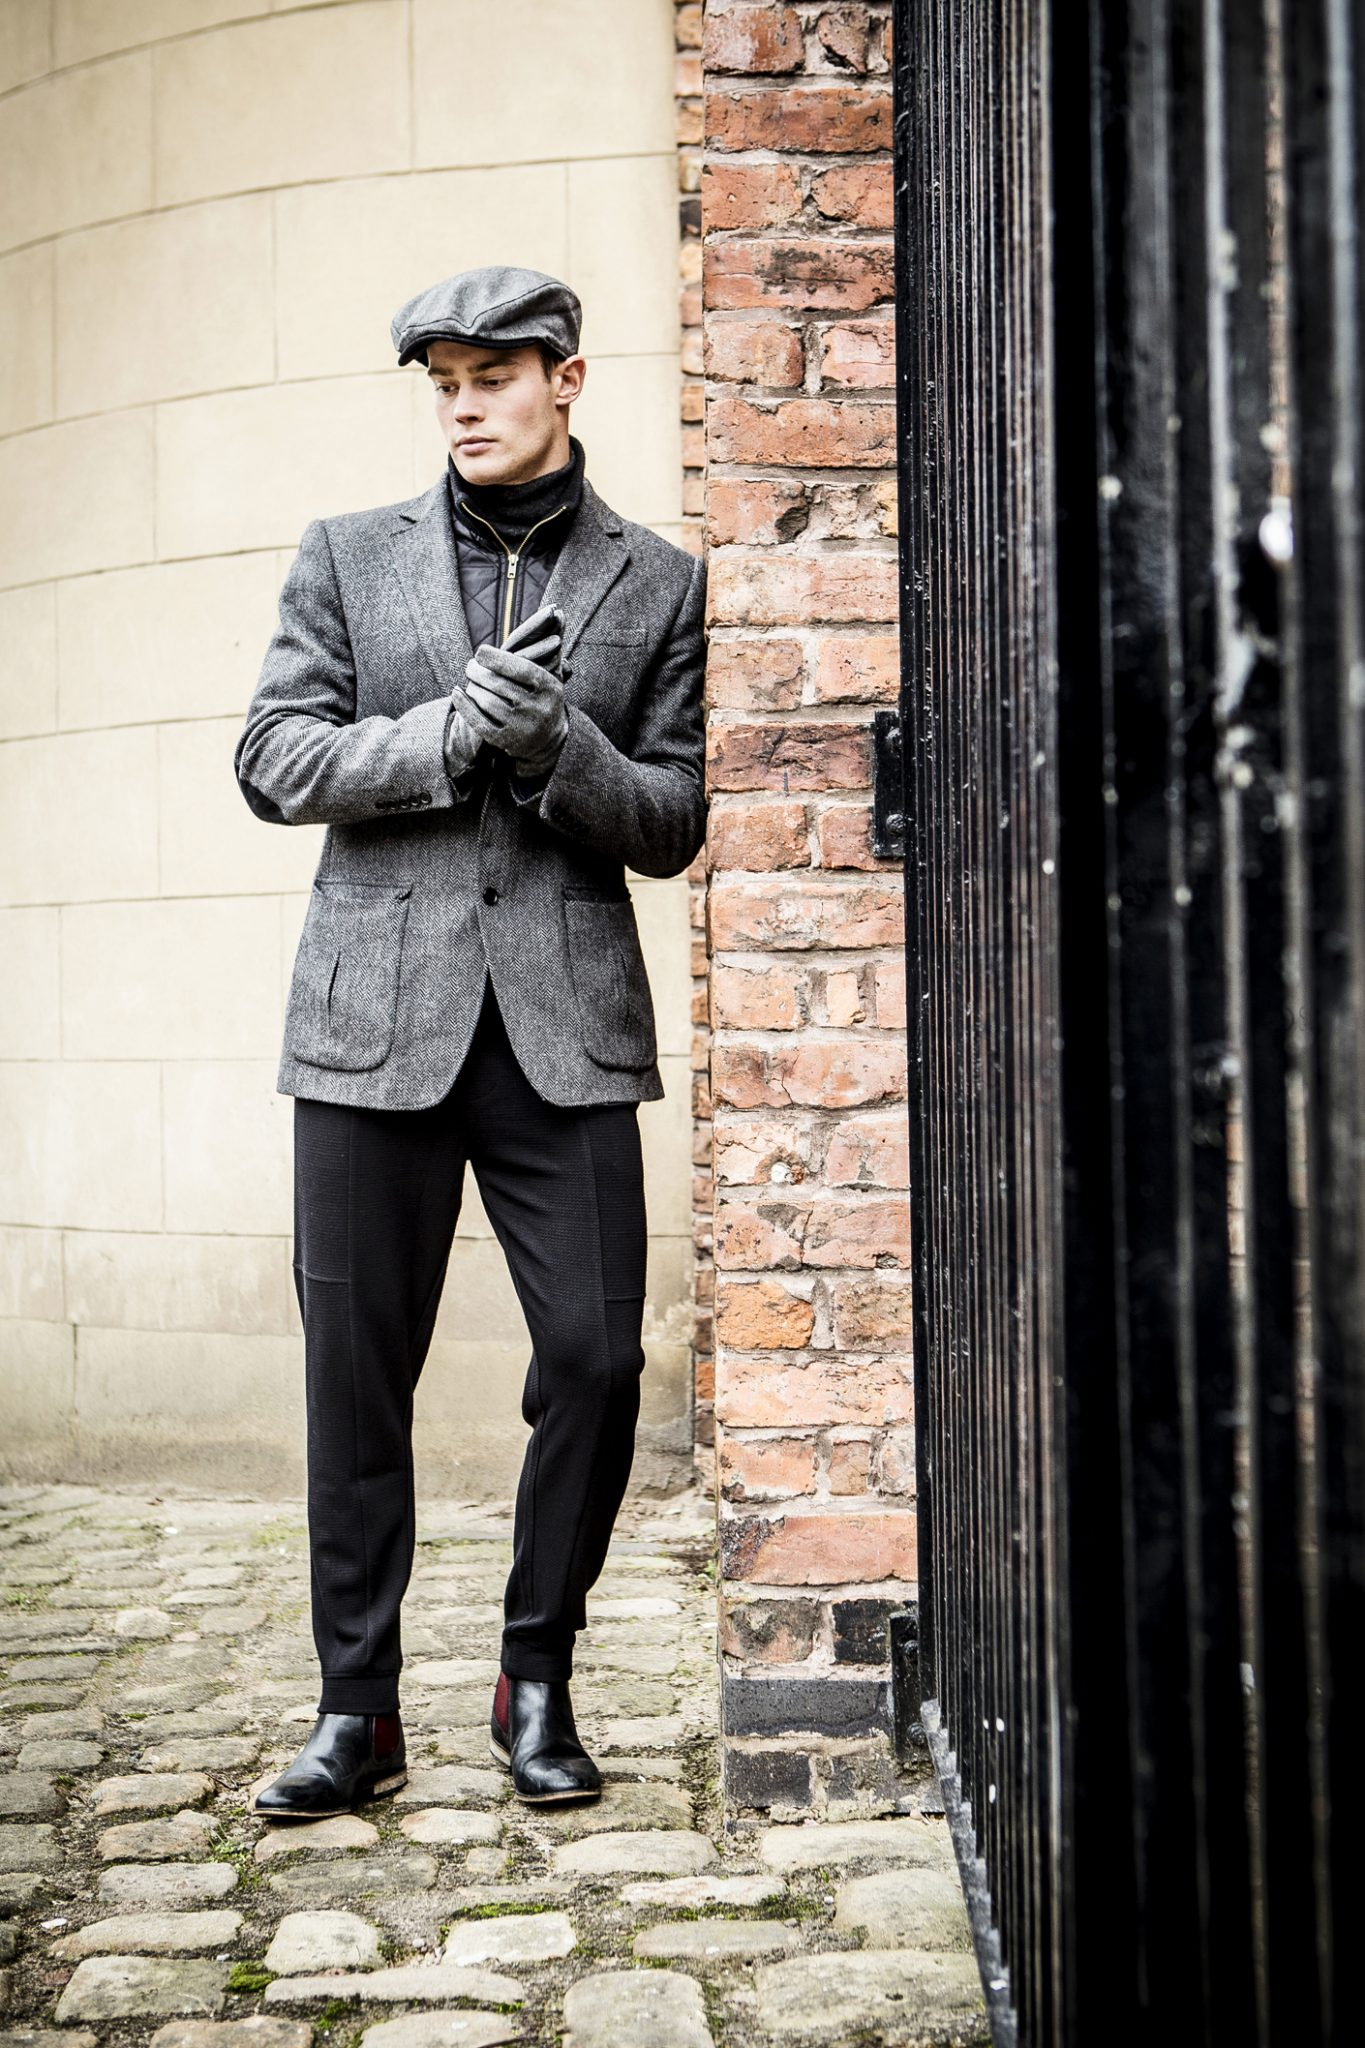 menswear-fashion-and-advertising-photography-in-manchester